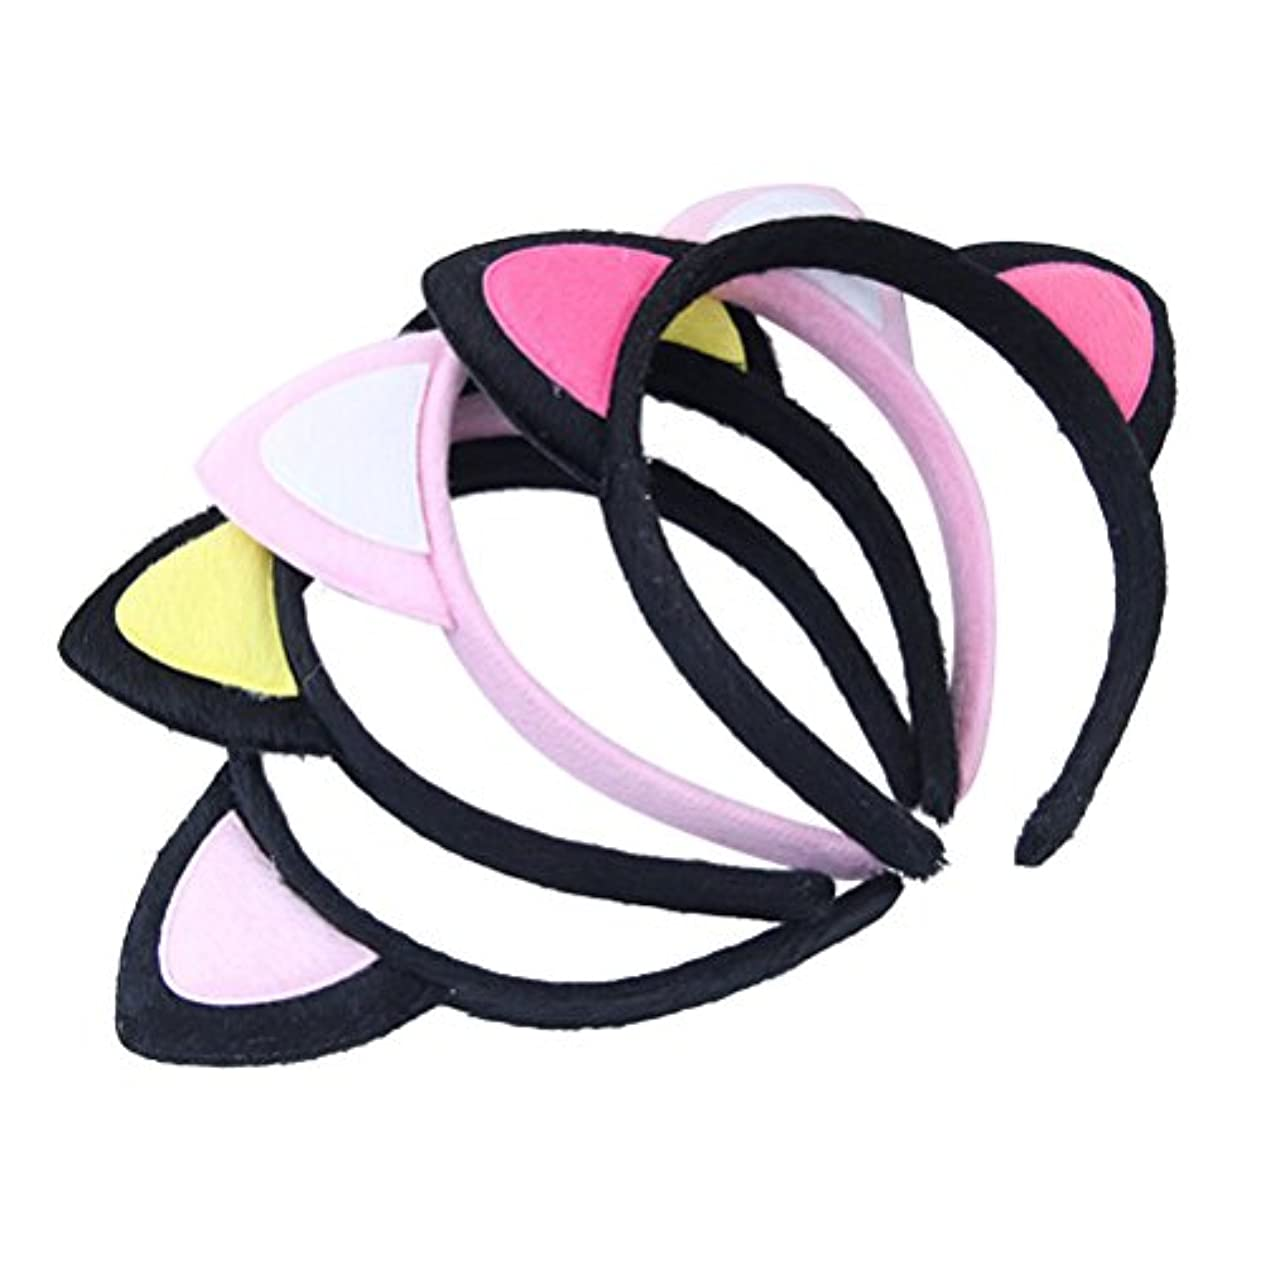 近々厚さ紳士Beaupretty 4Pcs Cat Ears Headbands Cute Plush Headband Hair Hoop Headdress for Girls